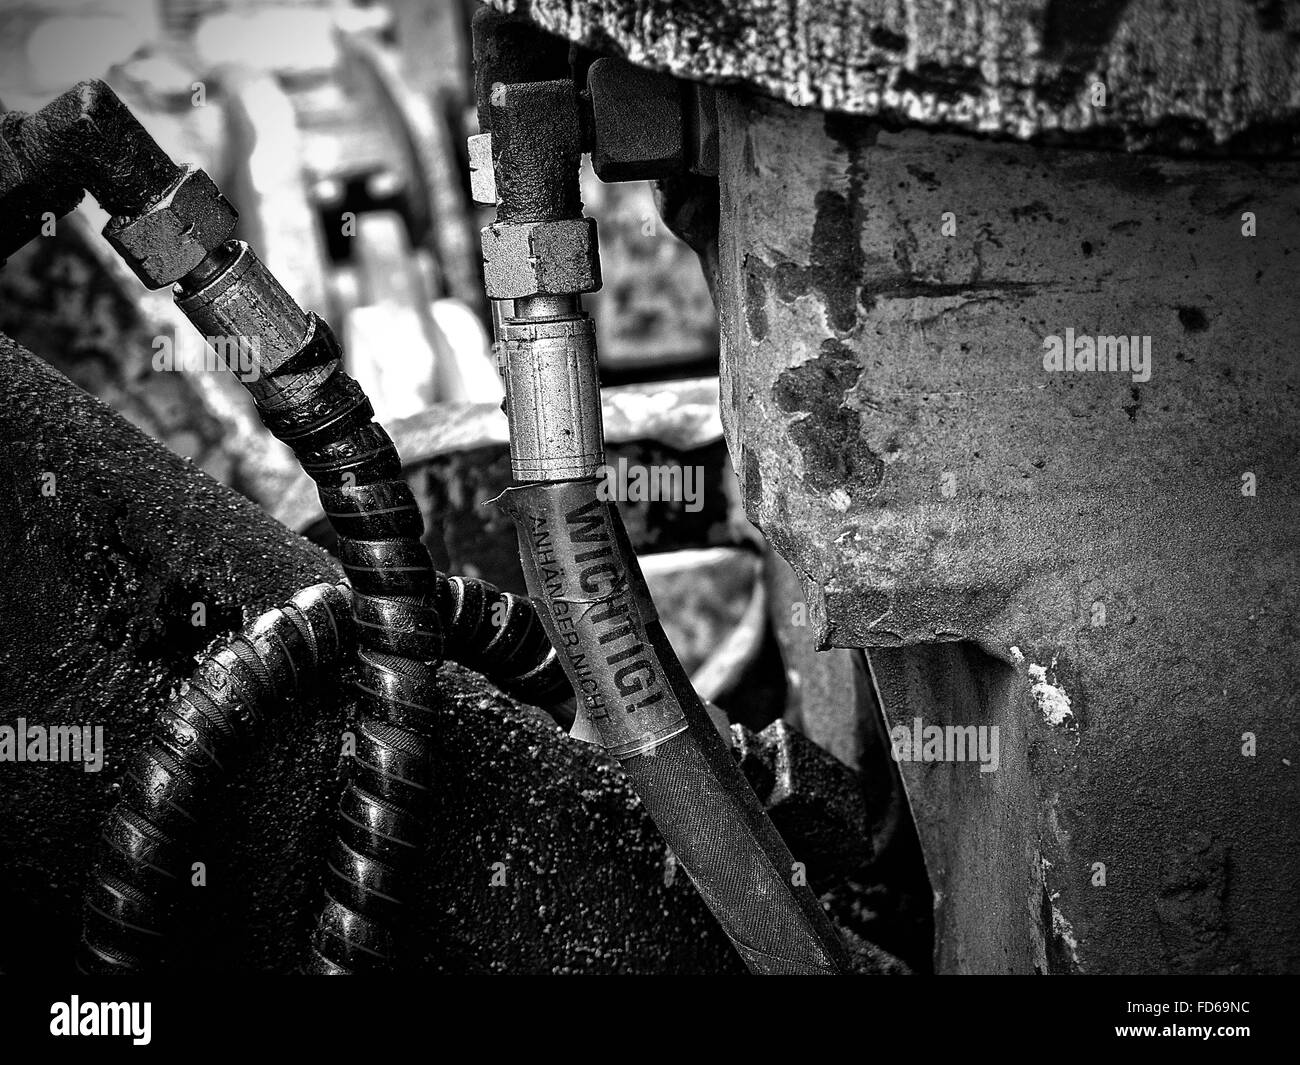 Close-Up Of Pipes Attached On Wall - Stock Image